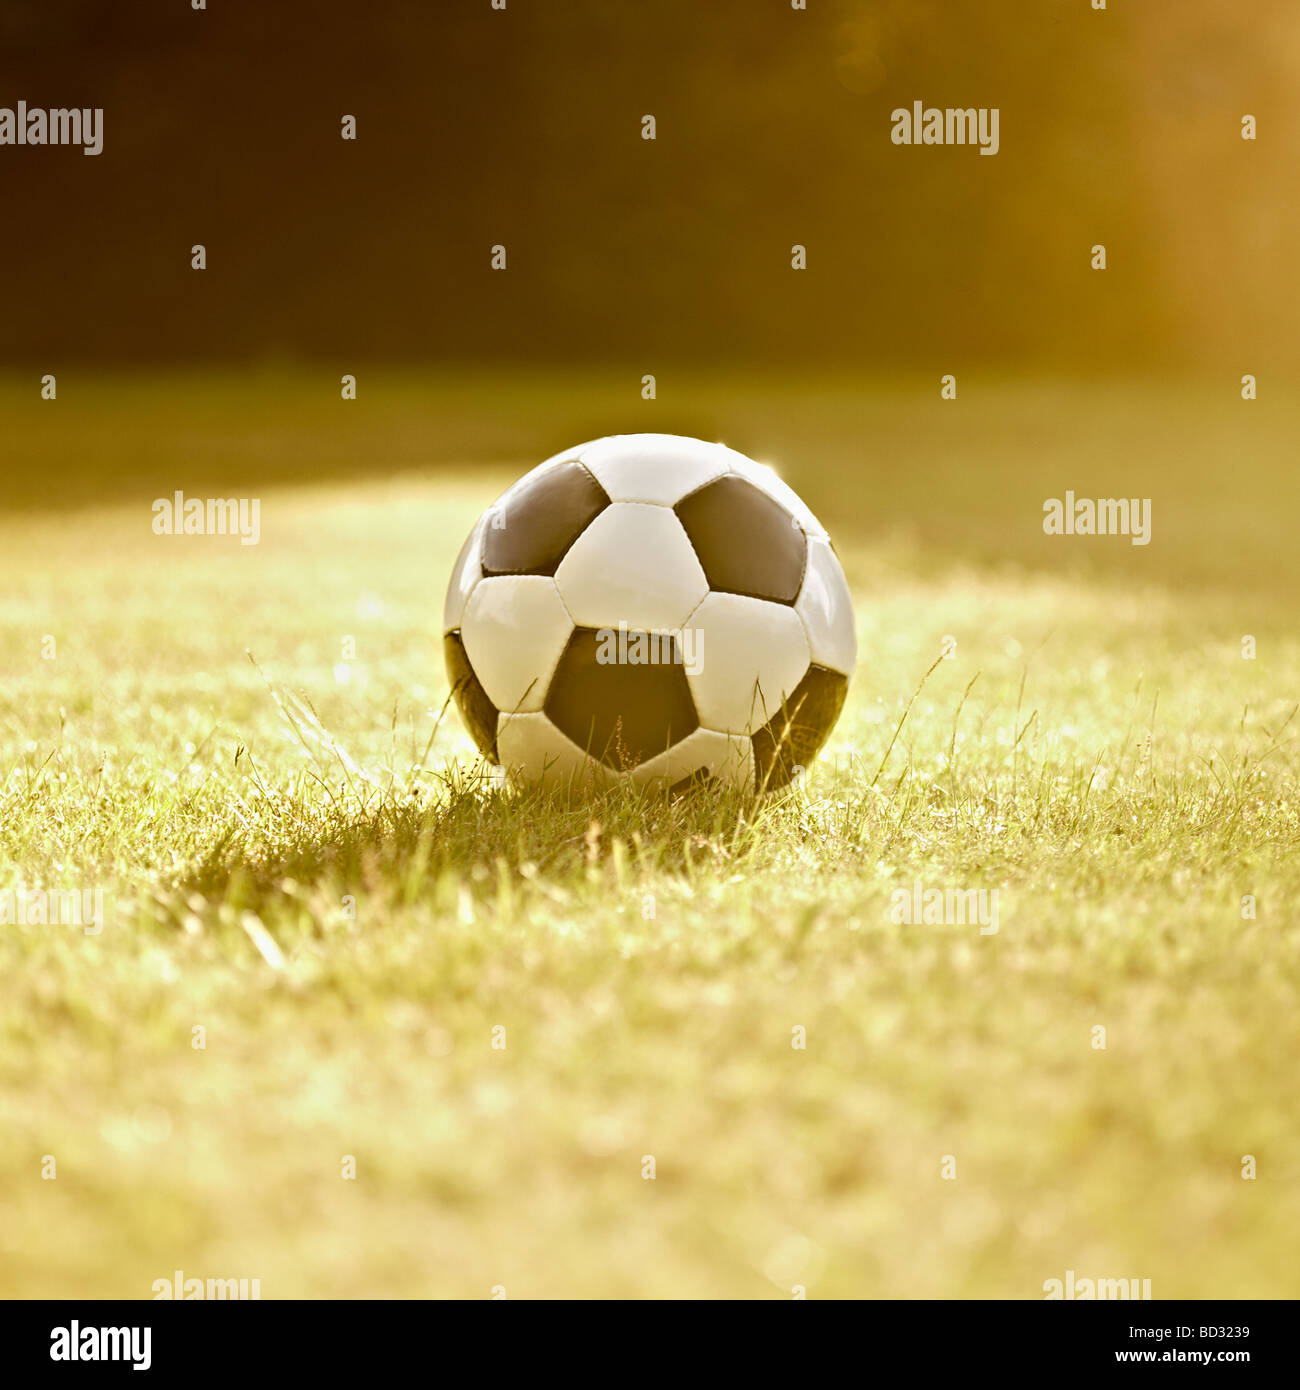 Black and white generic leather football / soccer ball on grass, back lit in the sun. - Stock Image